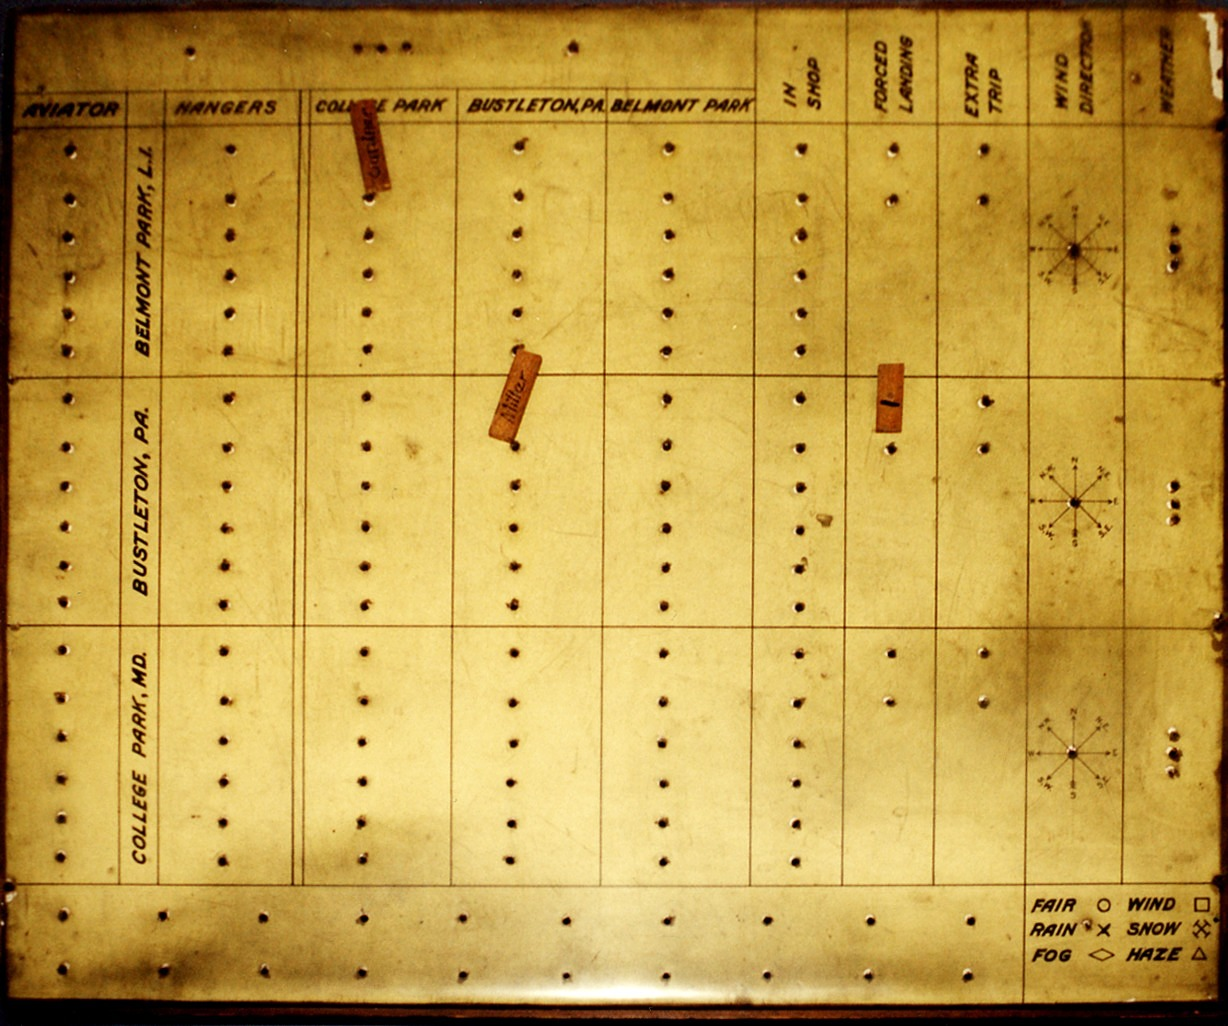 images for Airmail schedule dispatch board